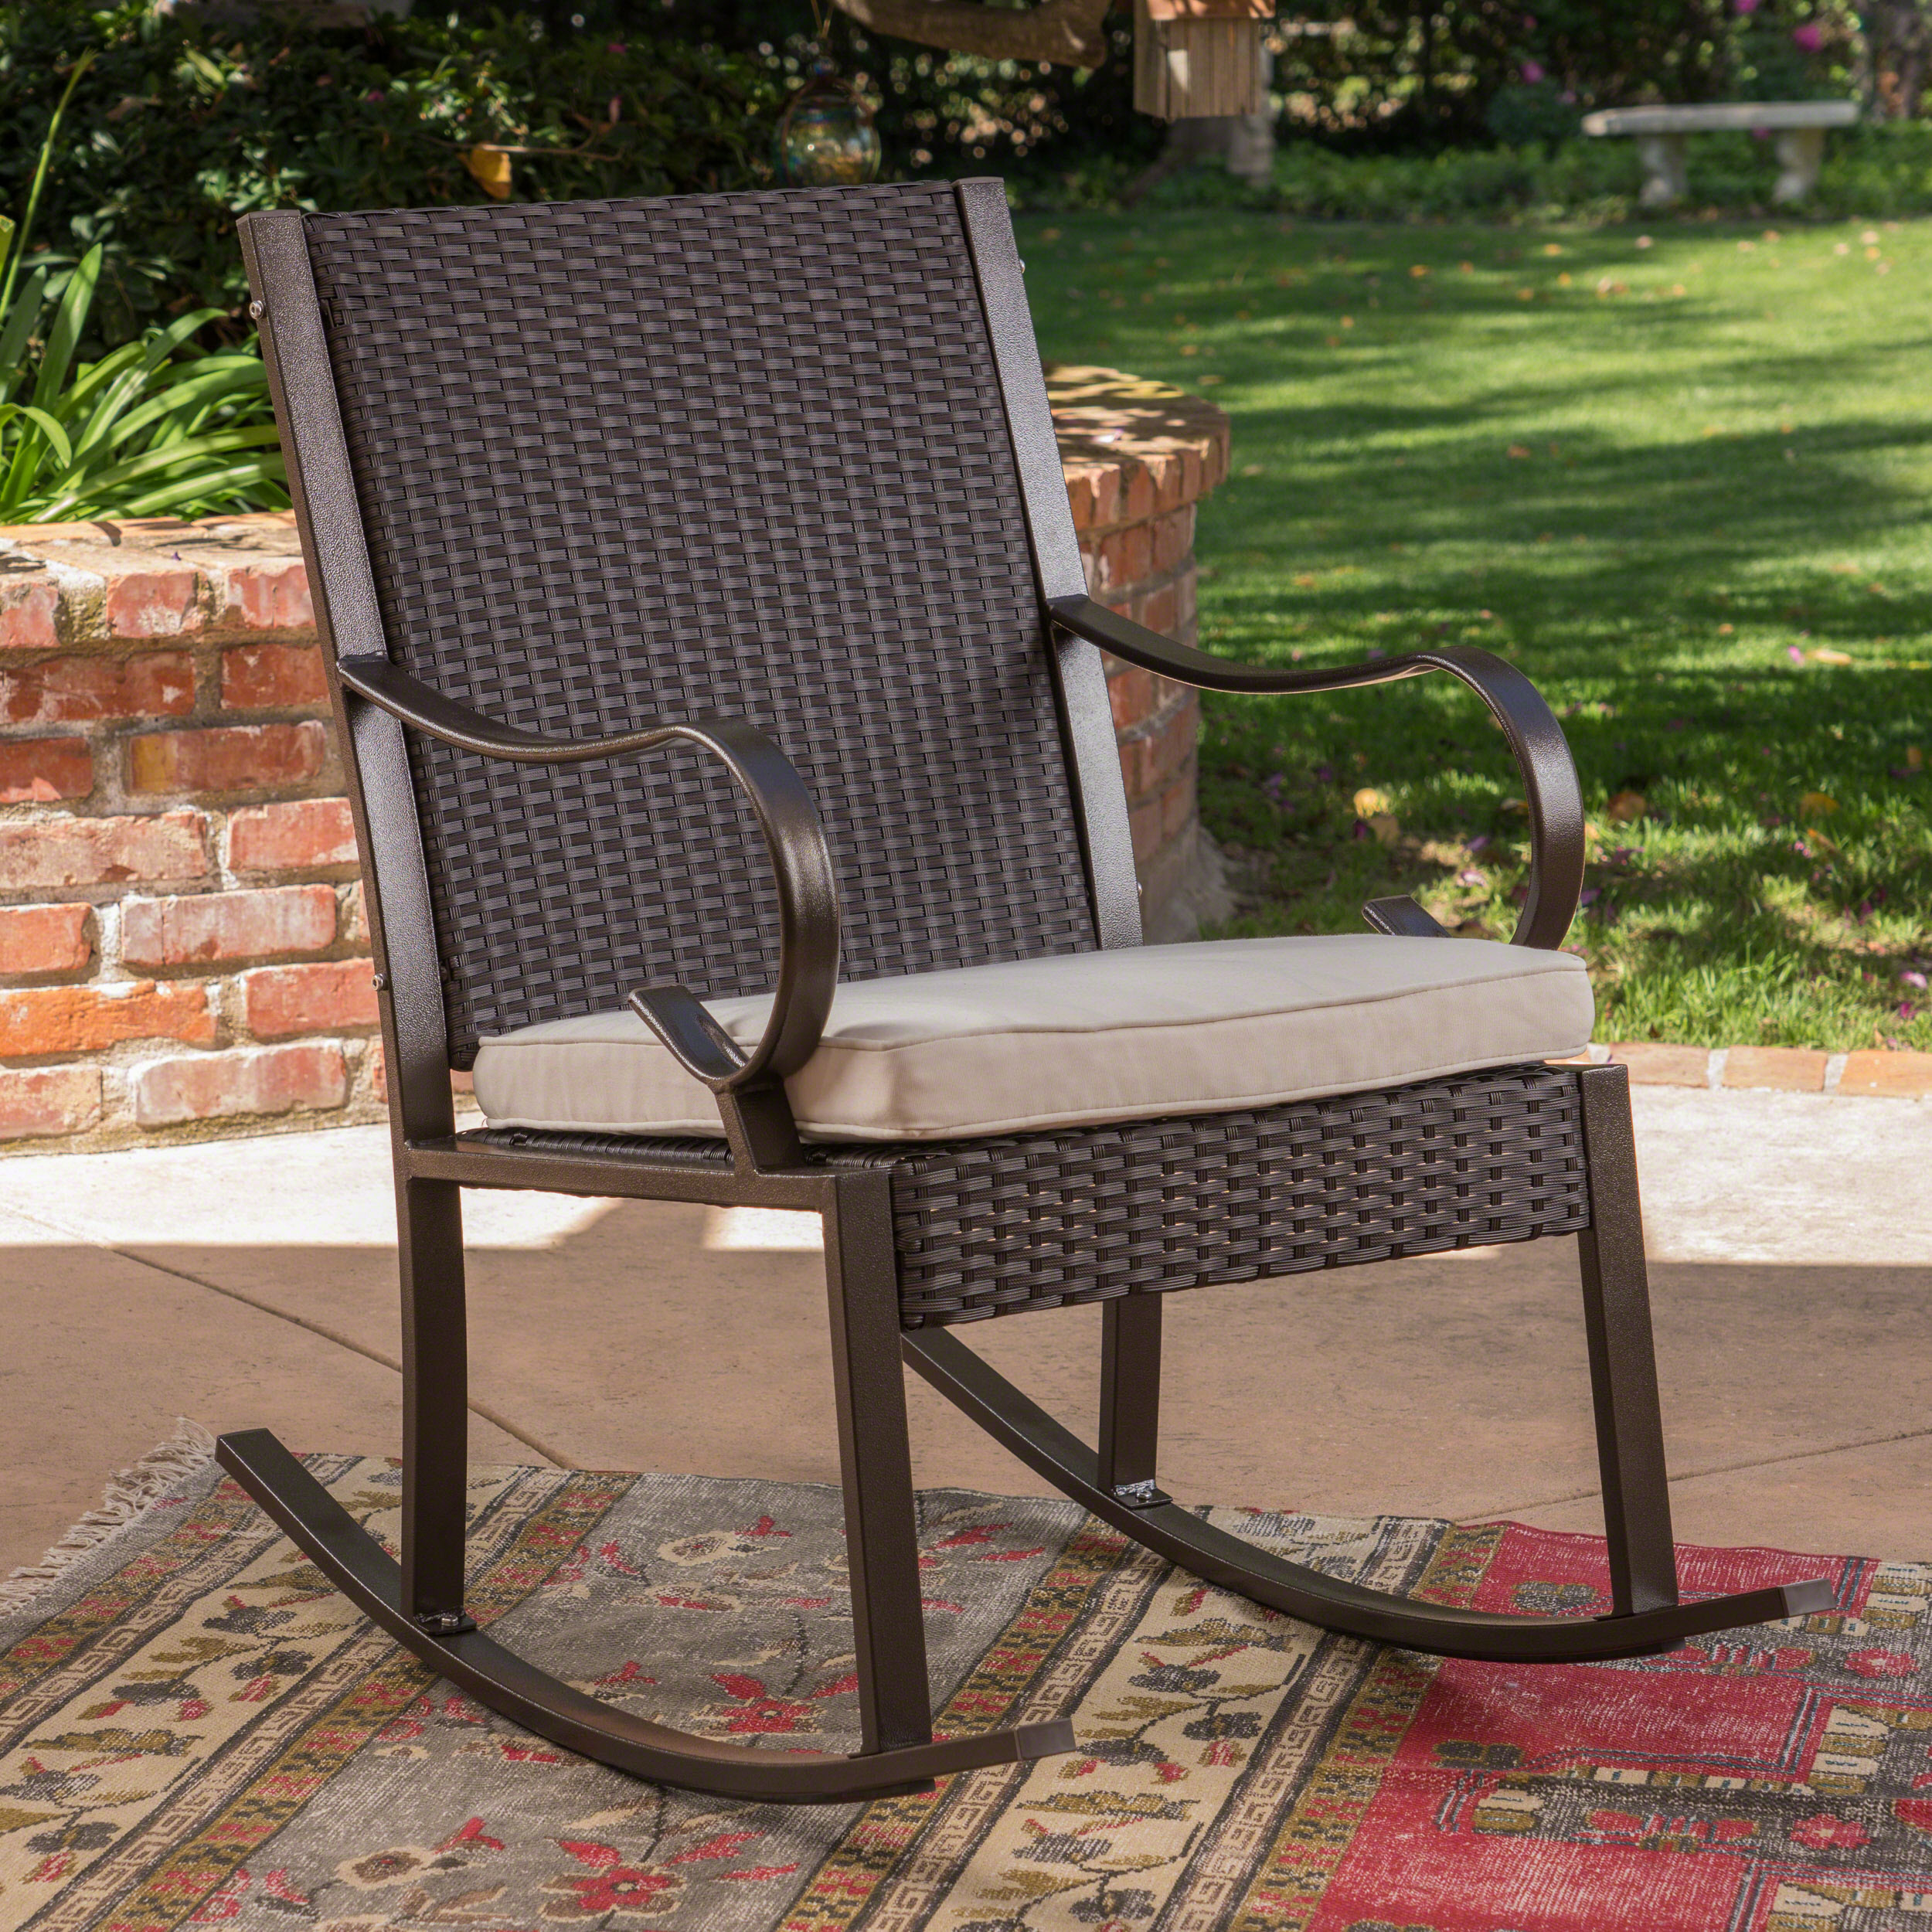 Hacienda Outdoor Wicker Rocking Chair With Cushion, Dark Brown And Cream Regarding Rocking Chairs, Cream And Brown (#7 of 20)